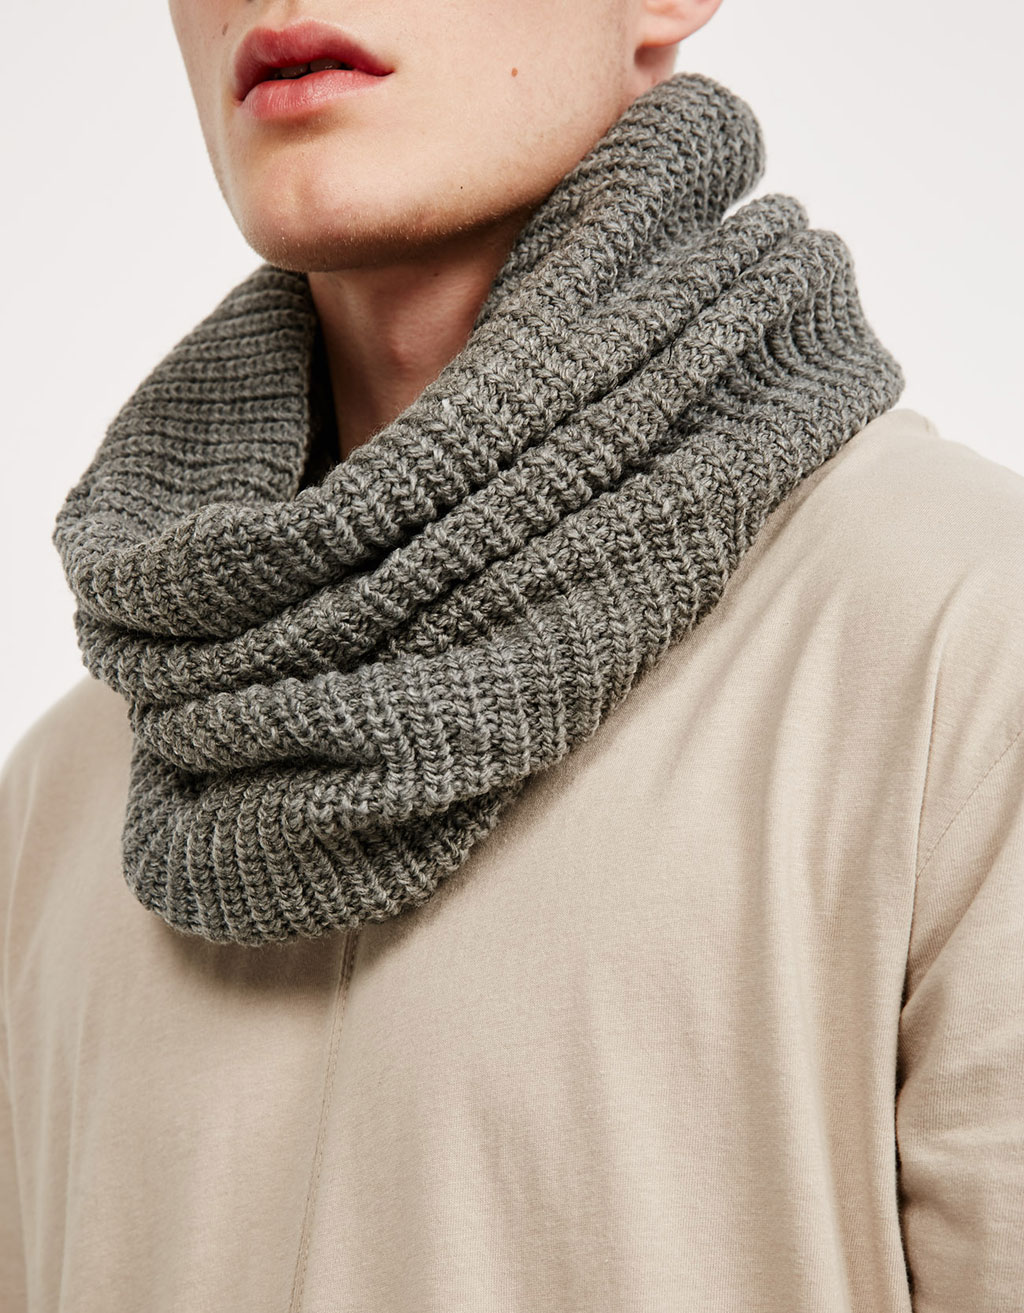 Ribbed snood scarf